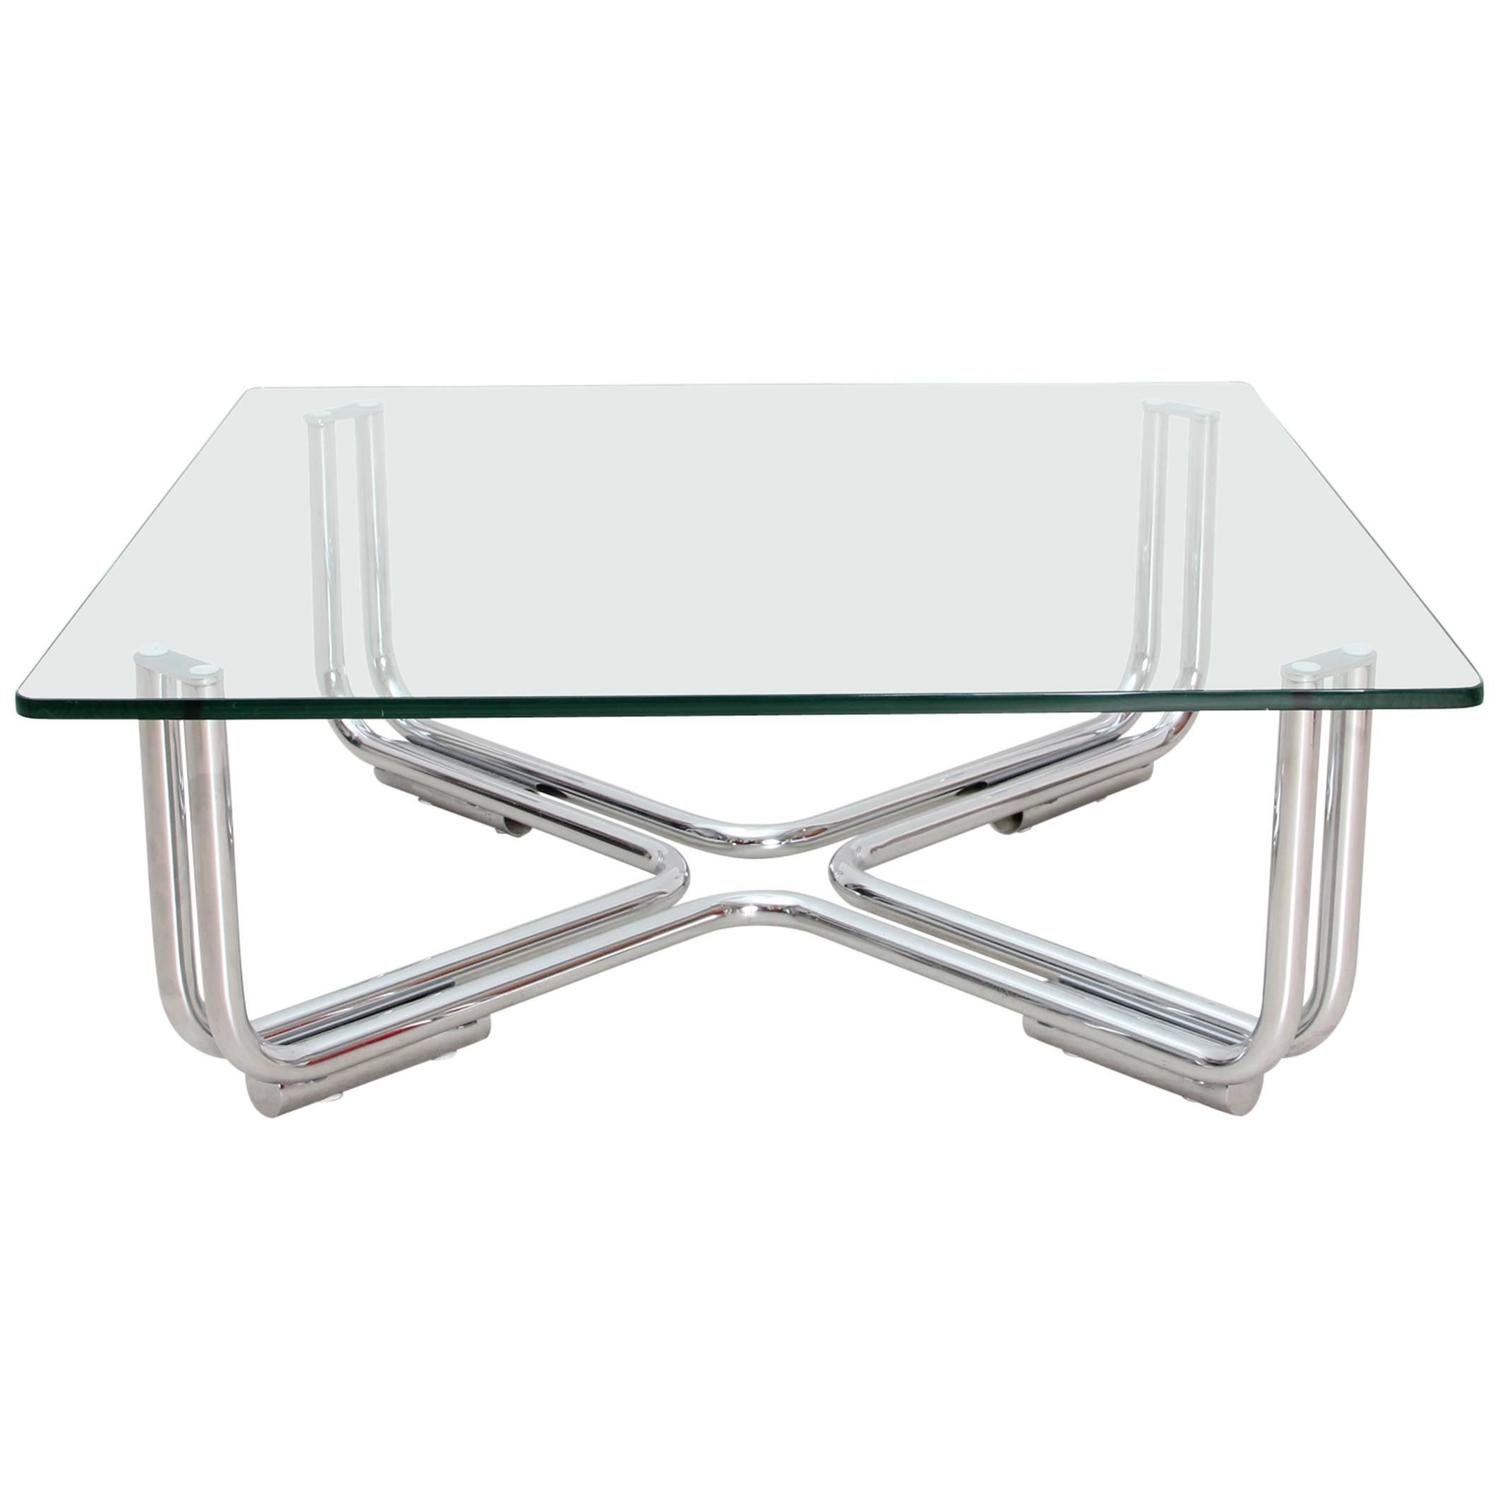 Gianfranco Frattini Coffee Table Model 784 Edited Cassina from the